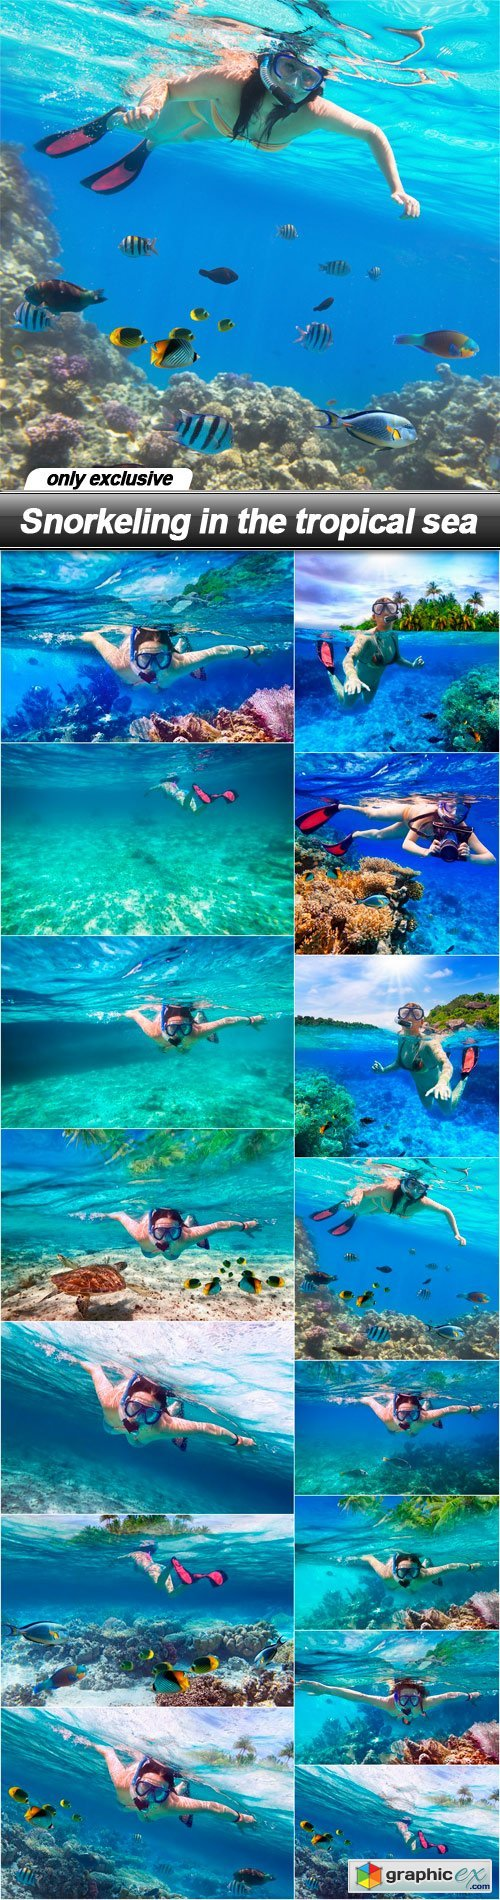 Snorkeling in the tropical sea - 15 UHQ JPEG